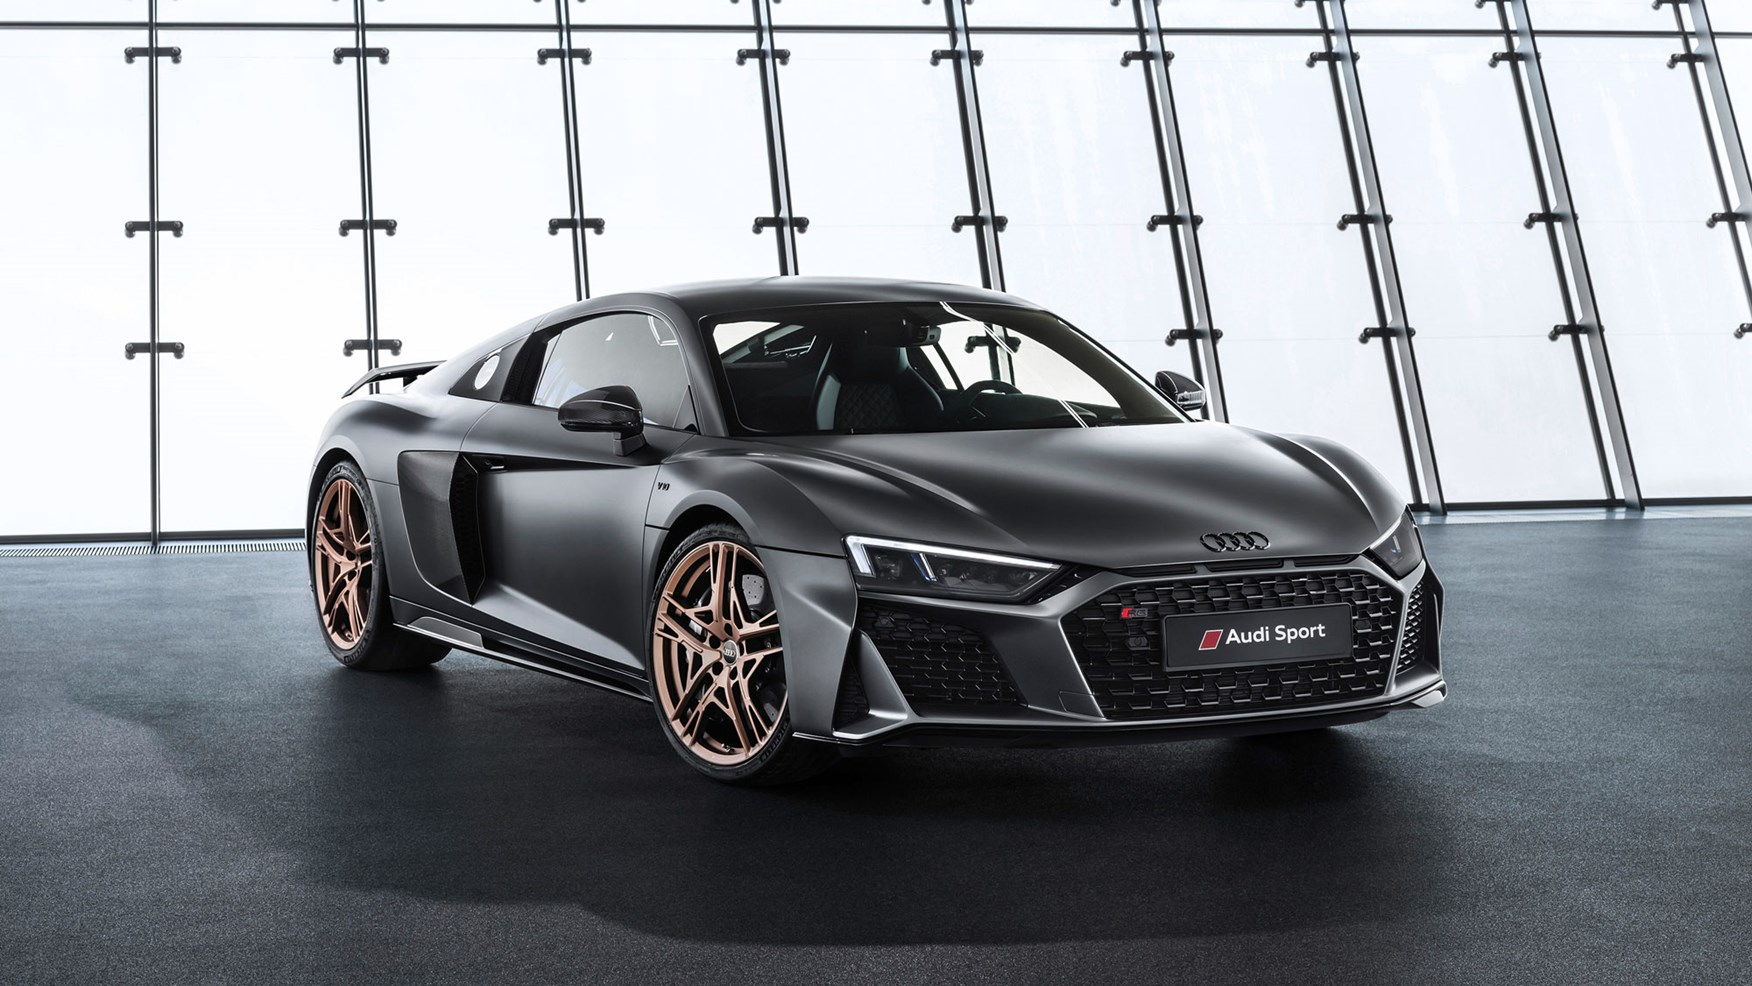 25 Great 2019 Audi R8 Redesign and Concept with 2019 Audi R8